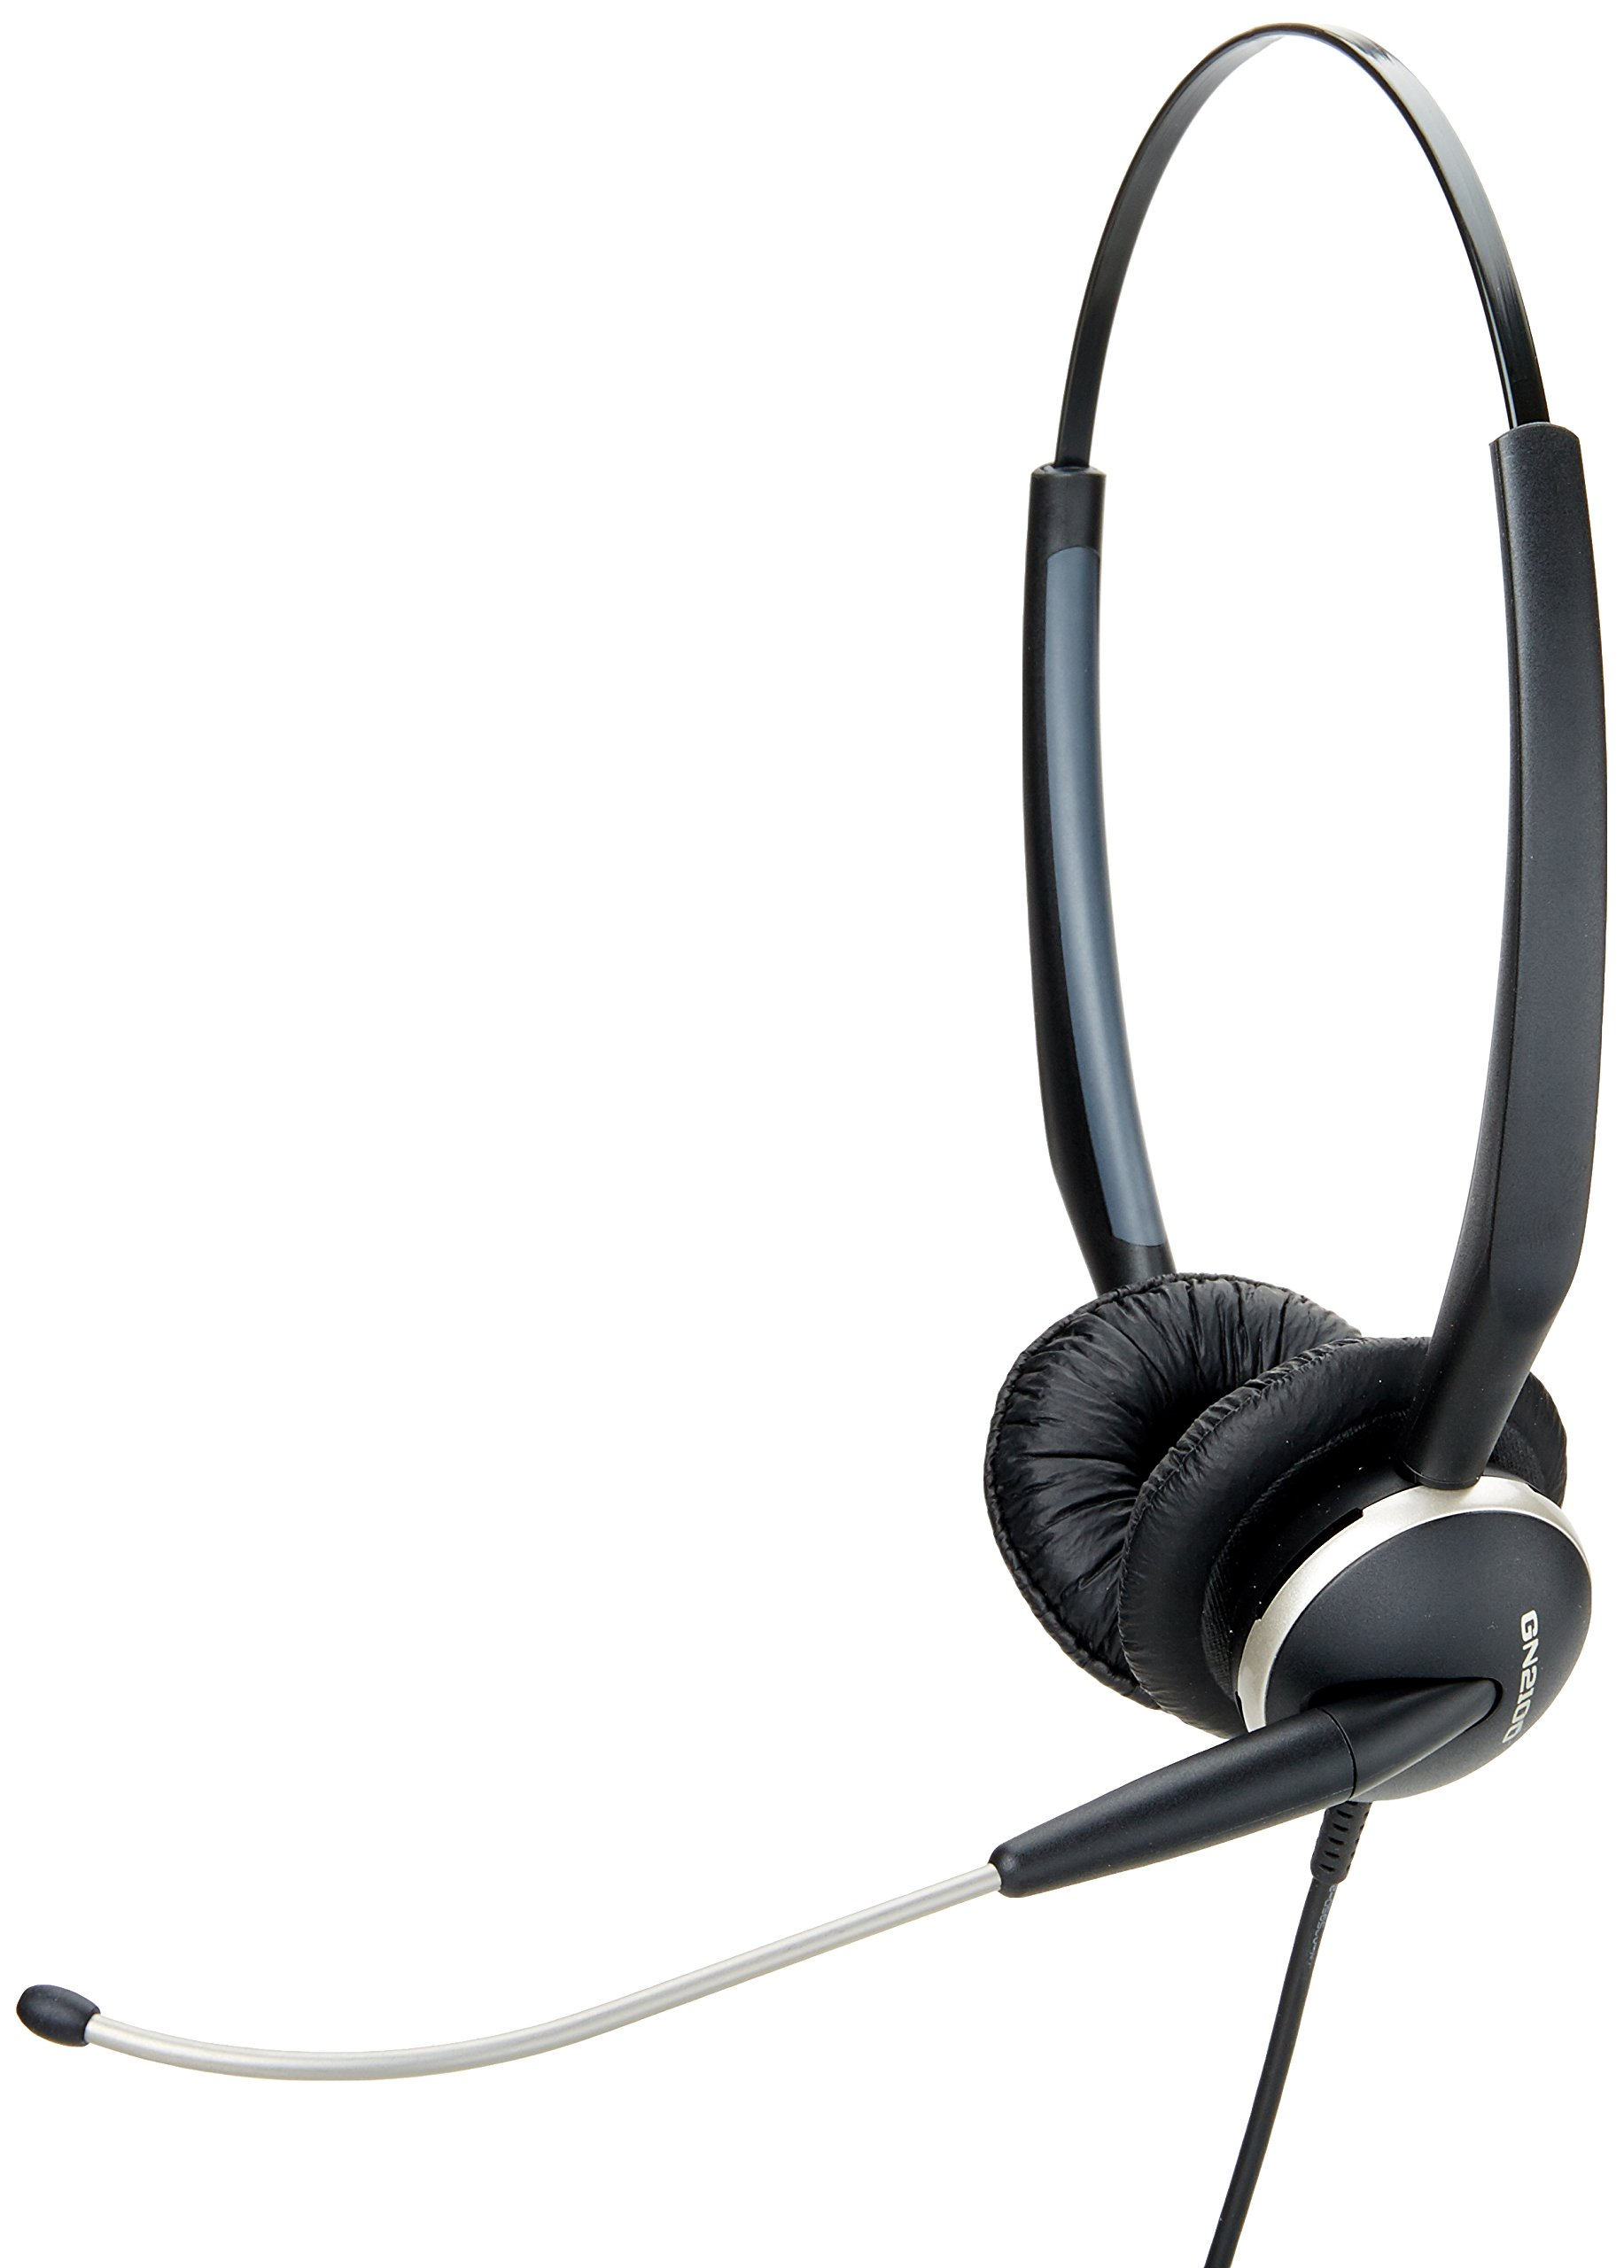 Jabra (GN2100 Series) GN2115 Duo, SoundTube Wired Headset